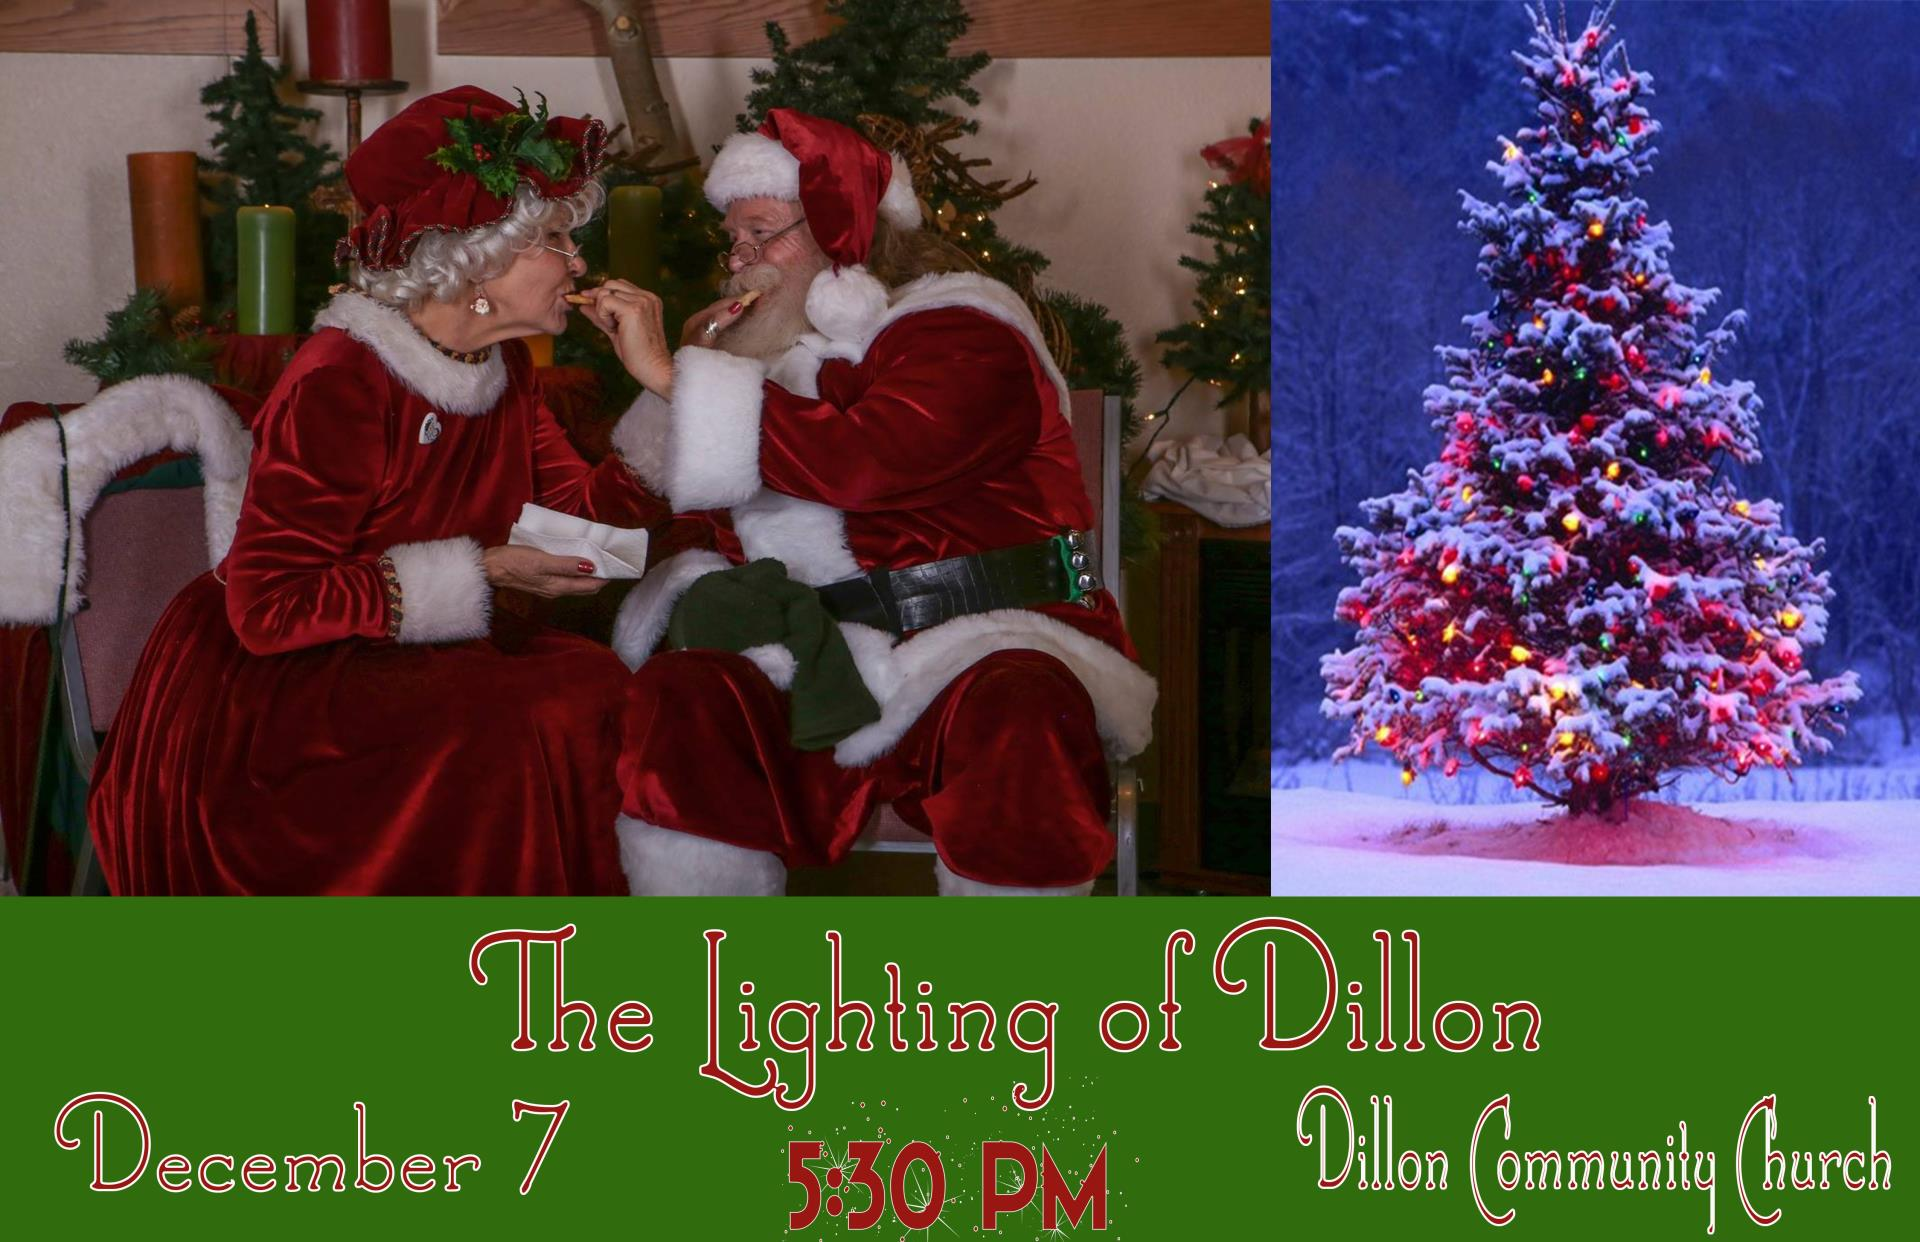 Join us December 7th at 5:30PM at the Dillon Community Church for an evening of good cheer as our community comes together to celebrate the kickoff to the ...